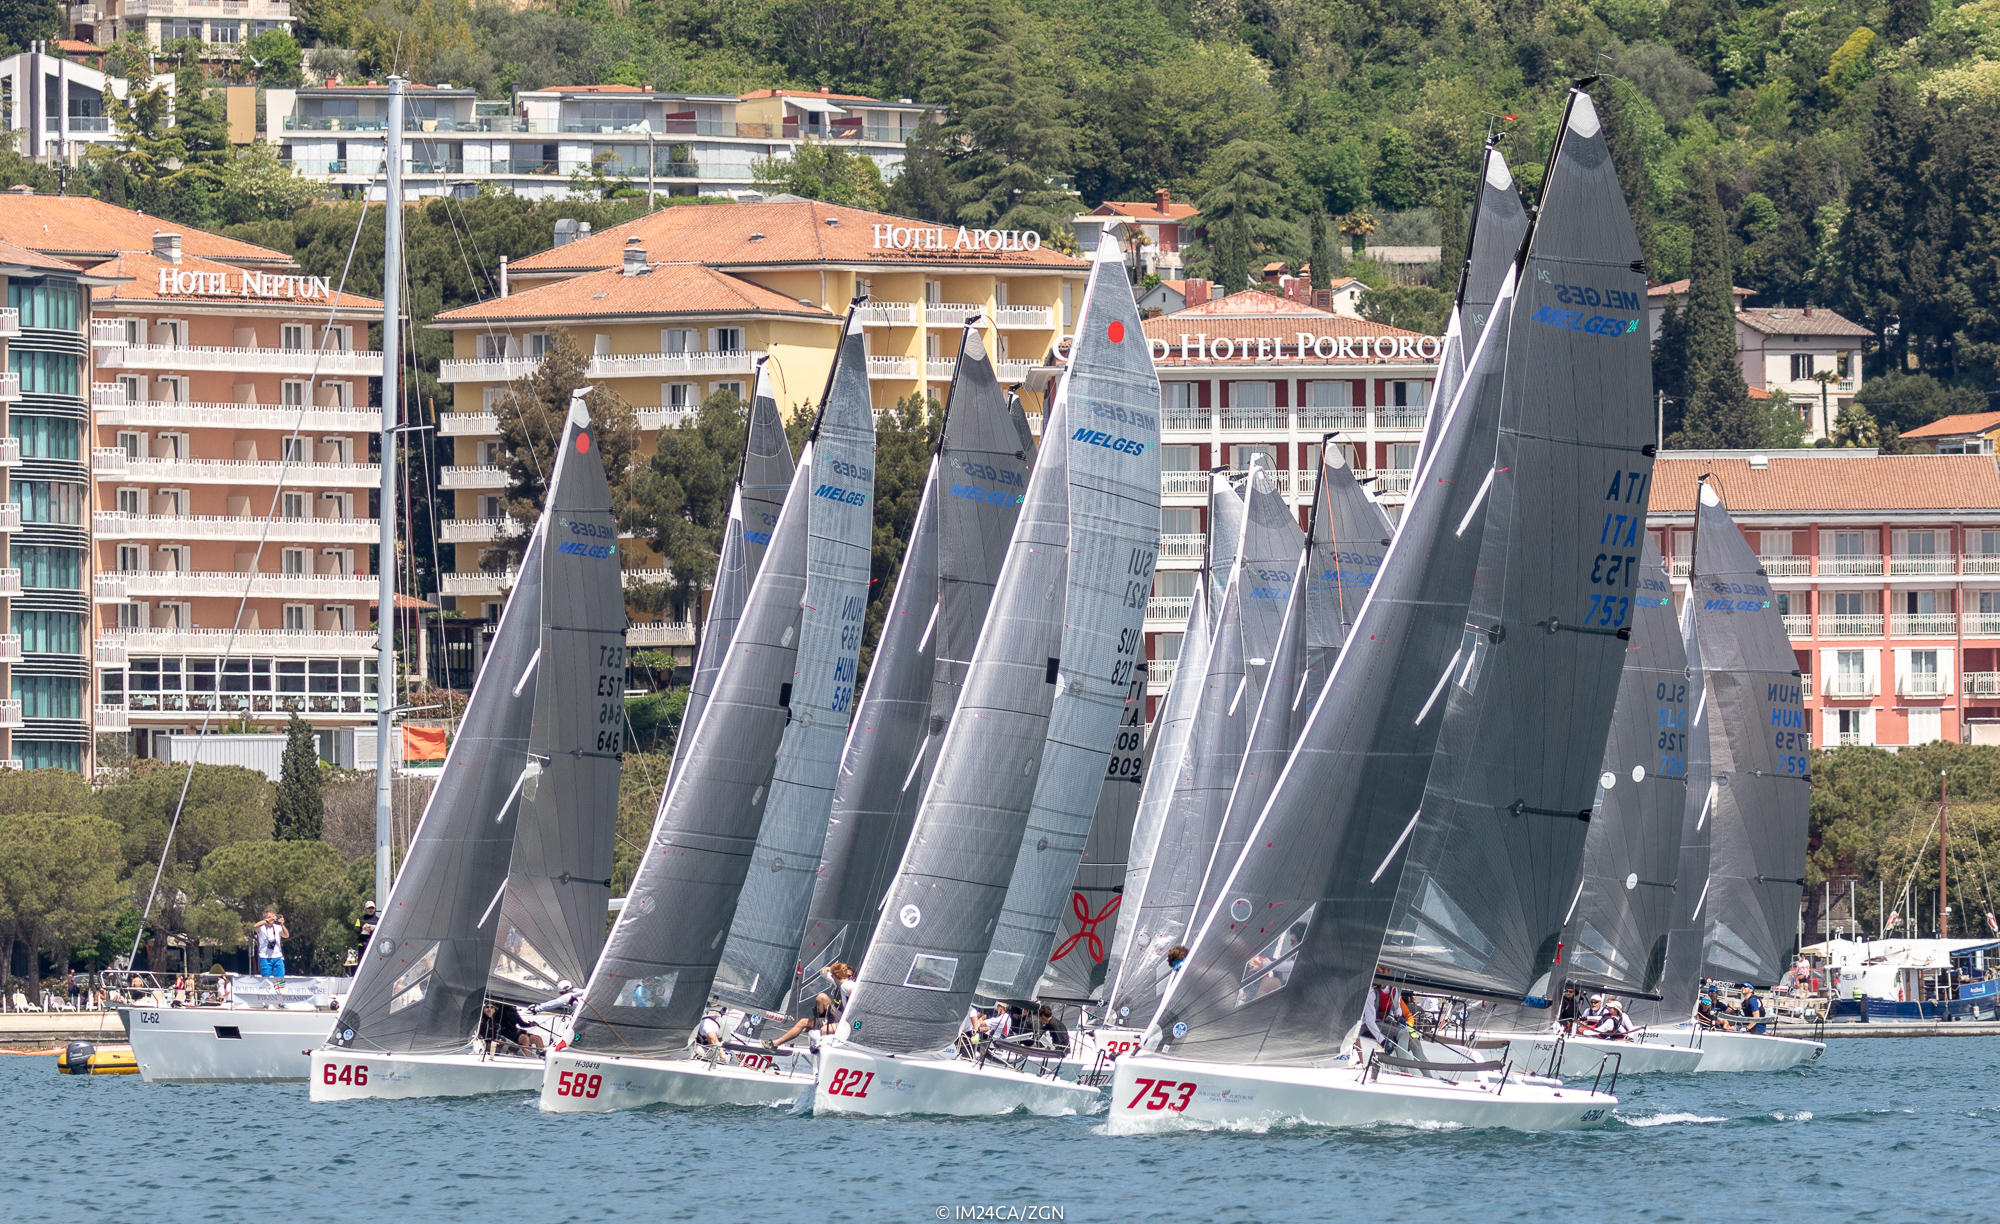 Melges 24 fleet in Portoroz 2018 - ZGN